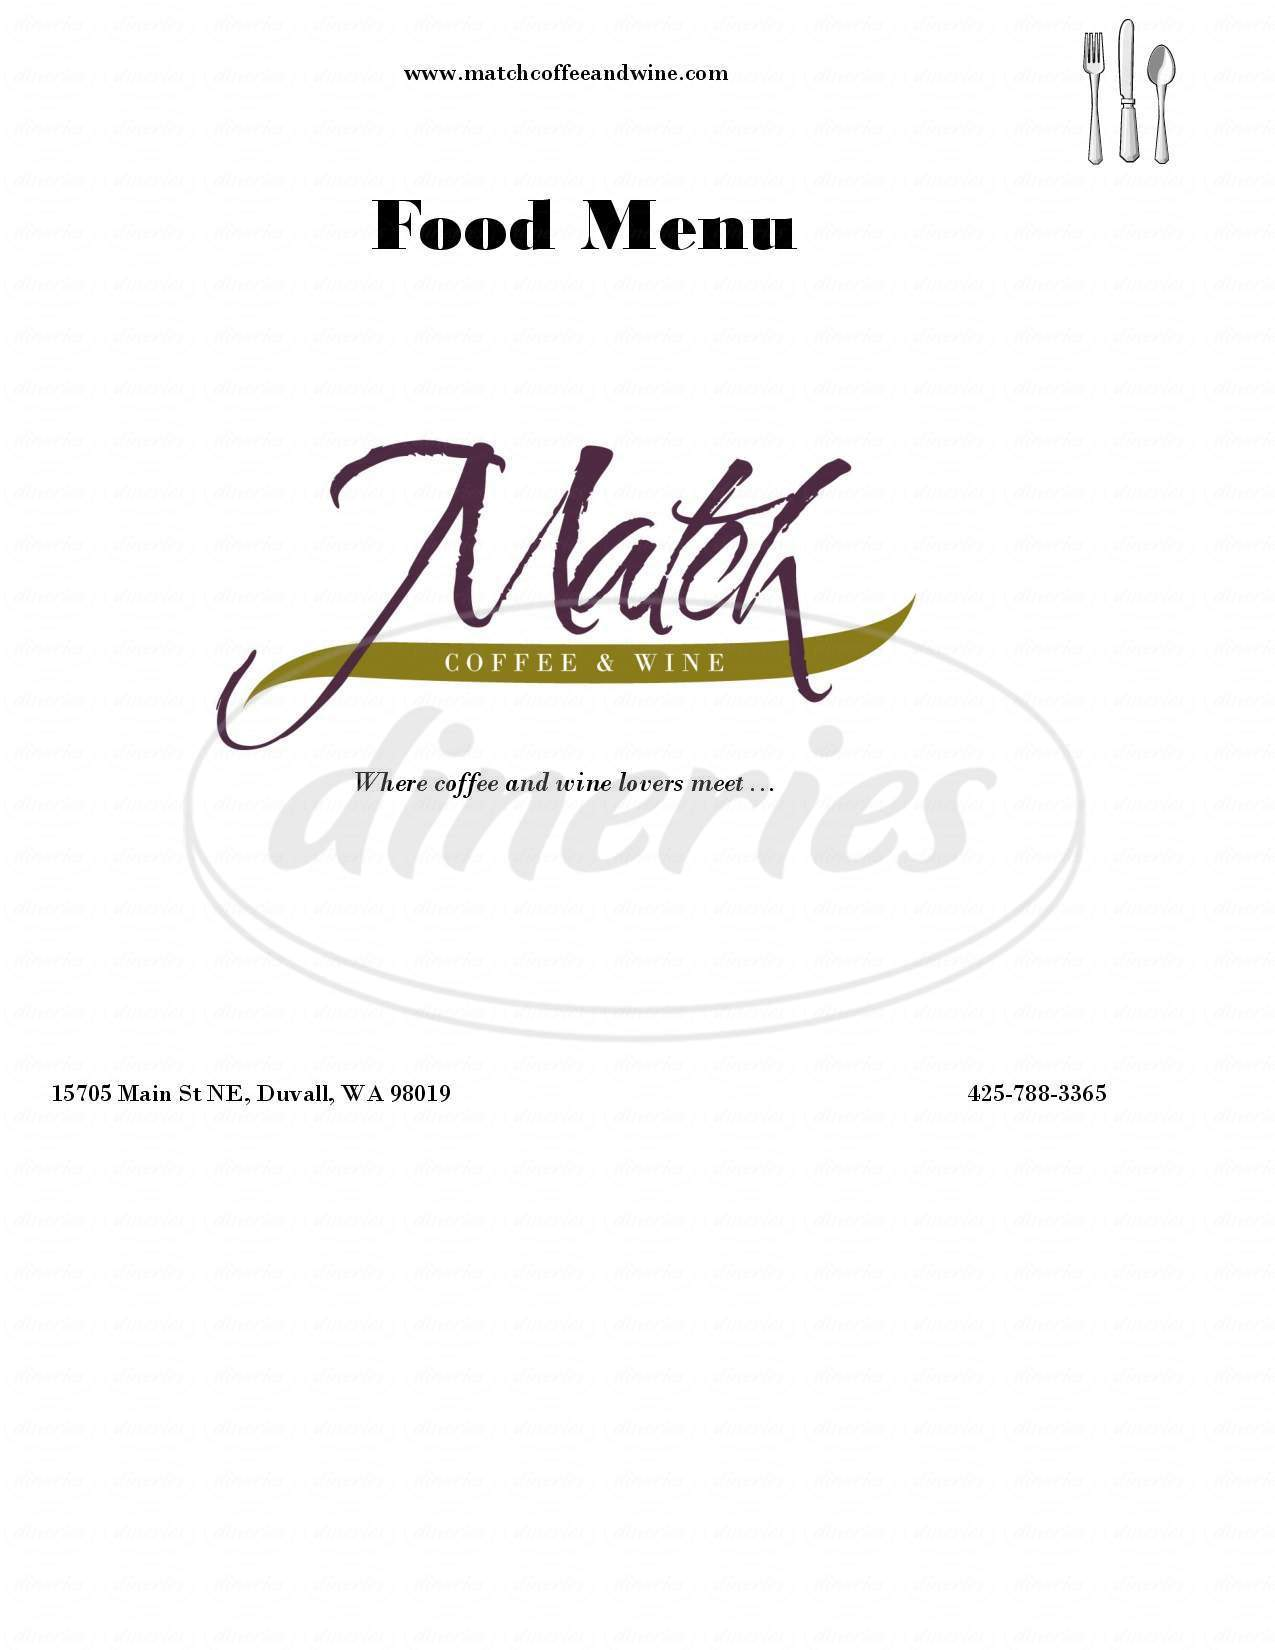 menu for Match Coffee & Wine